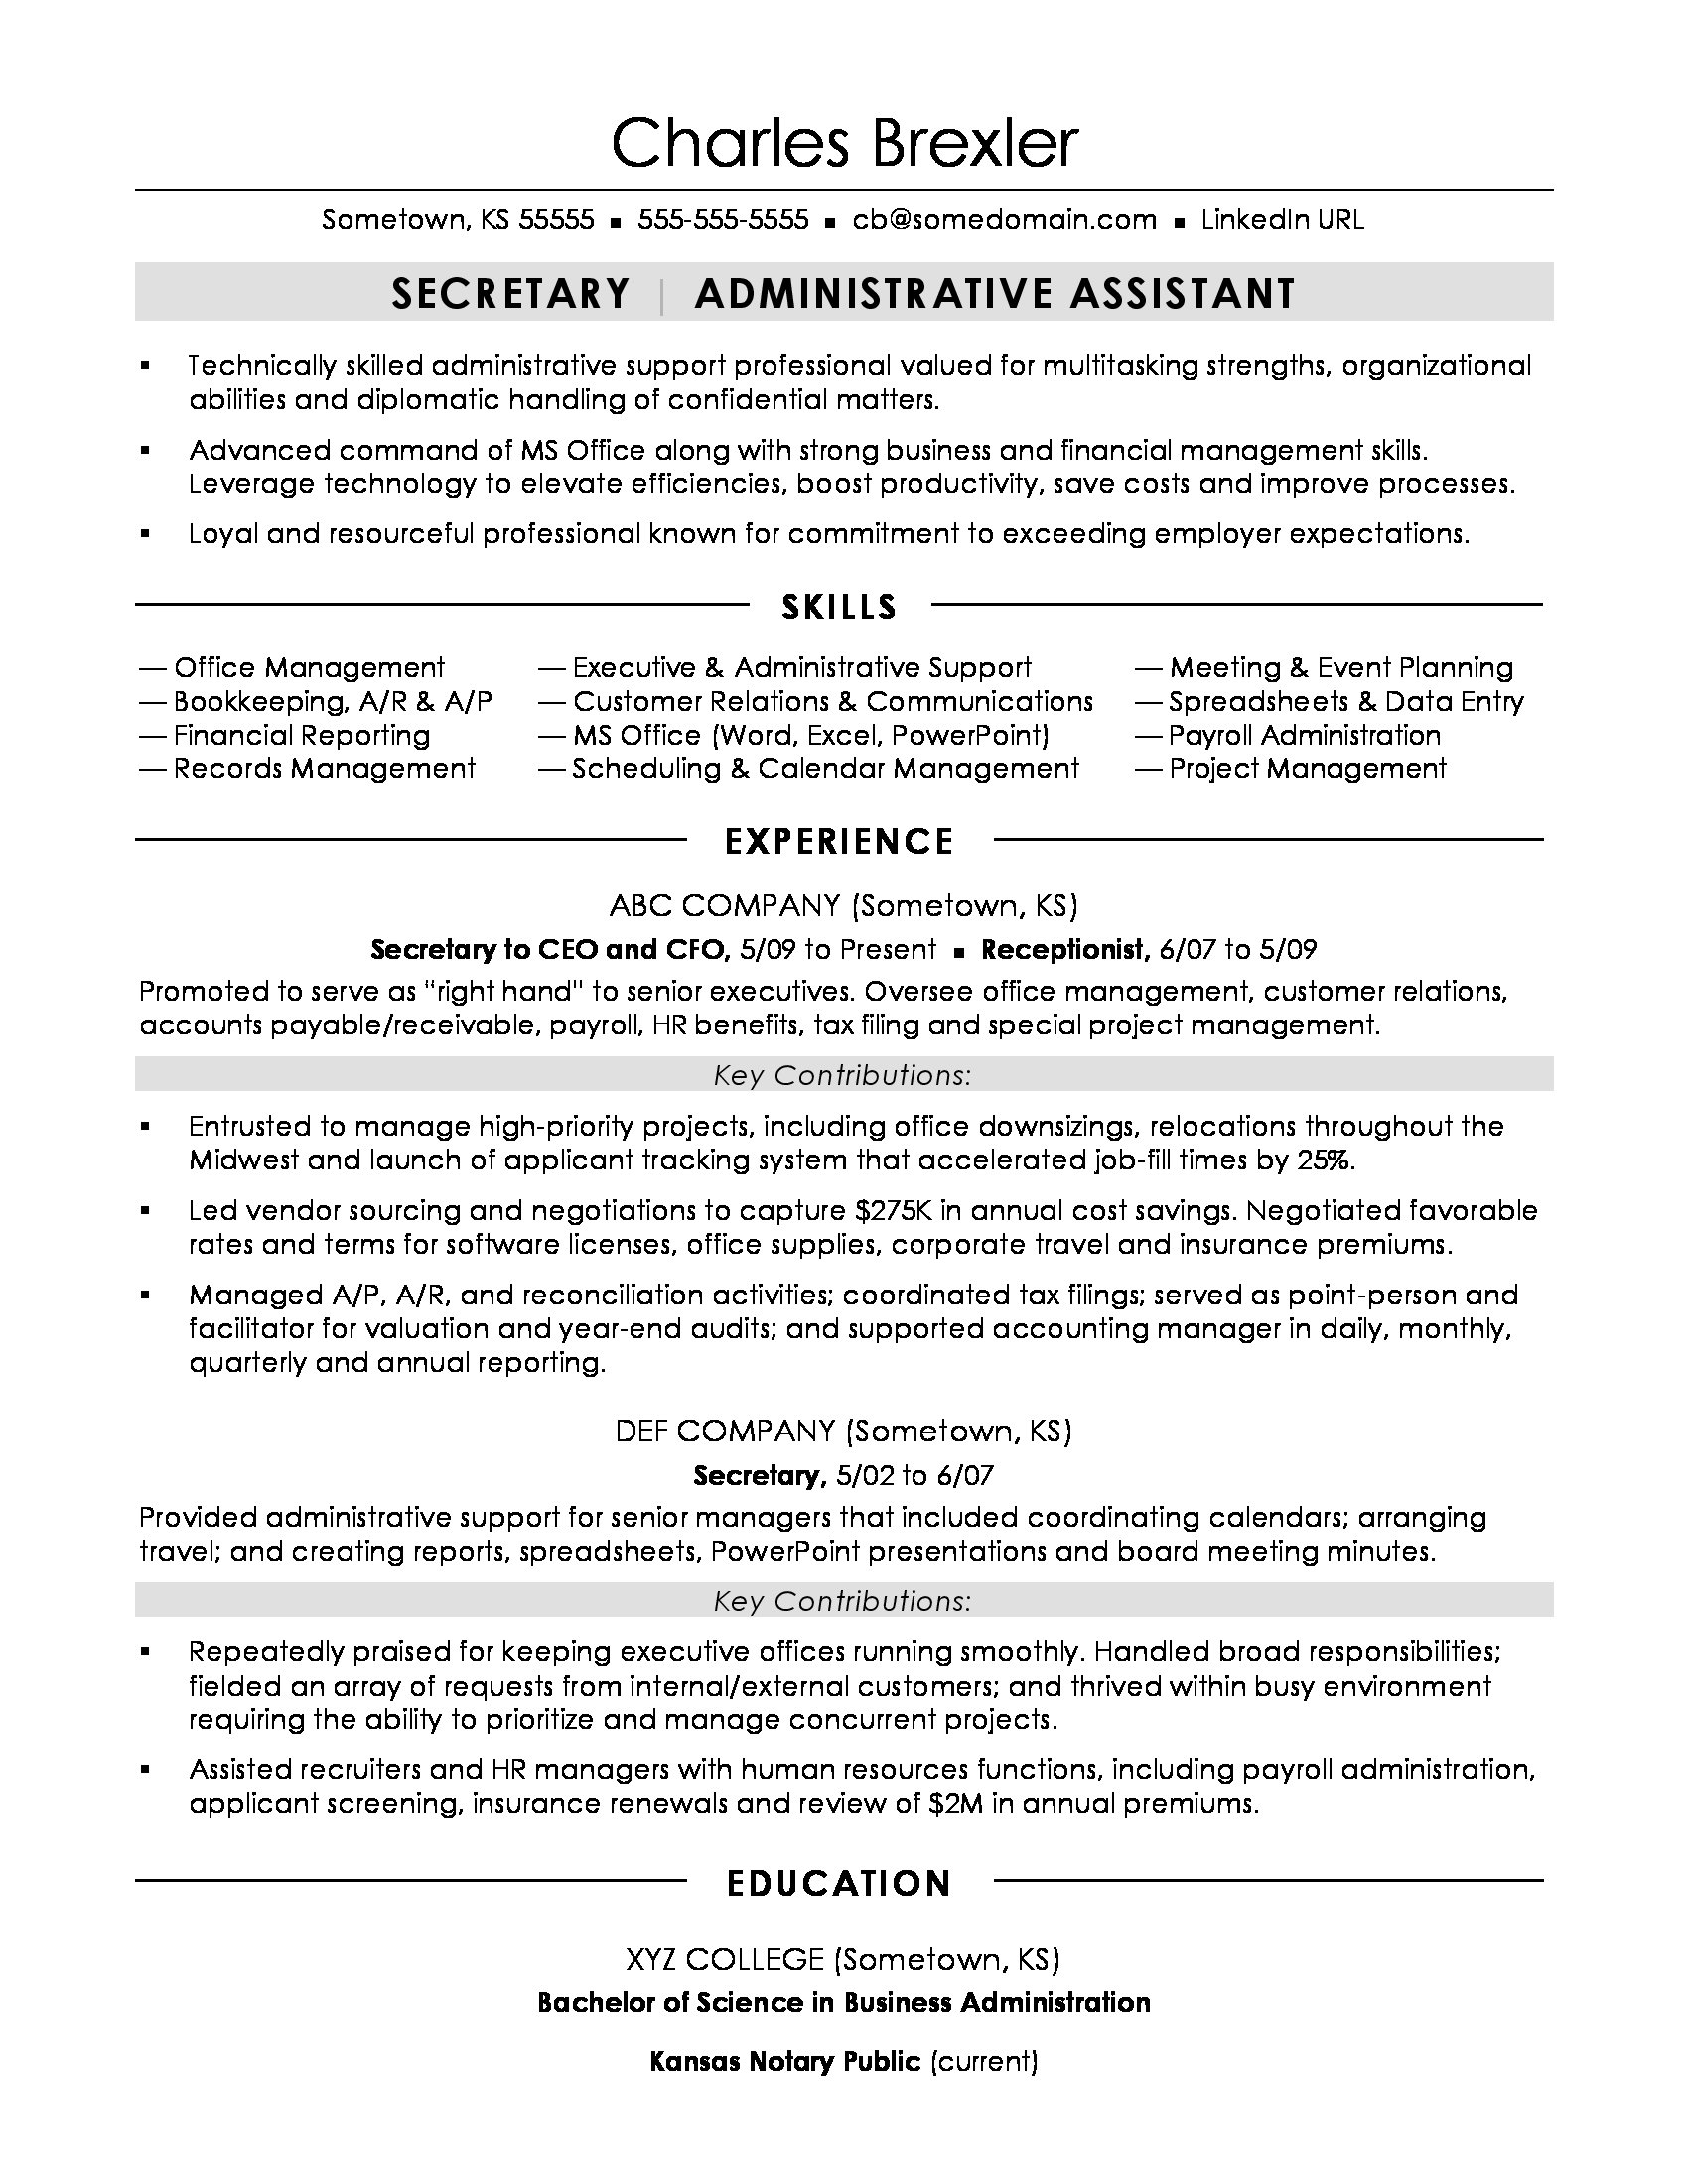 Secretary Resume Sample Monster